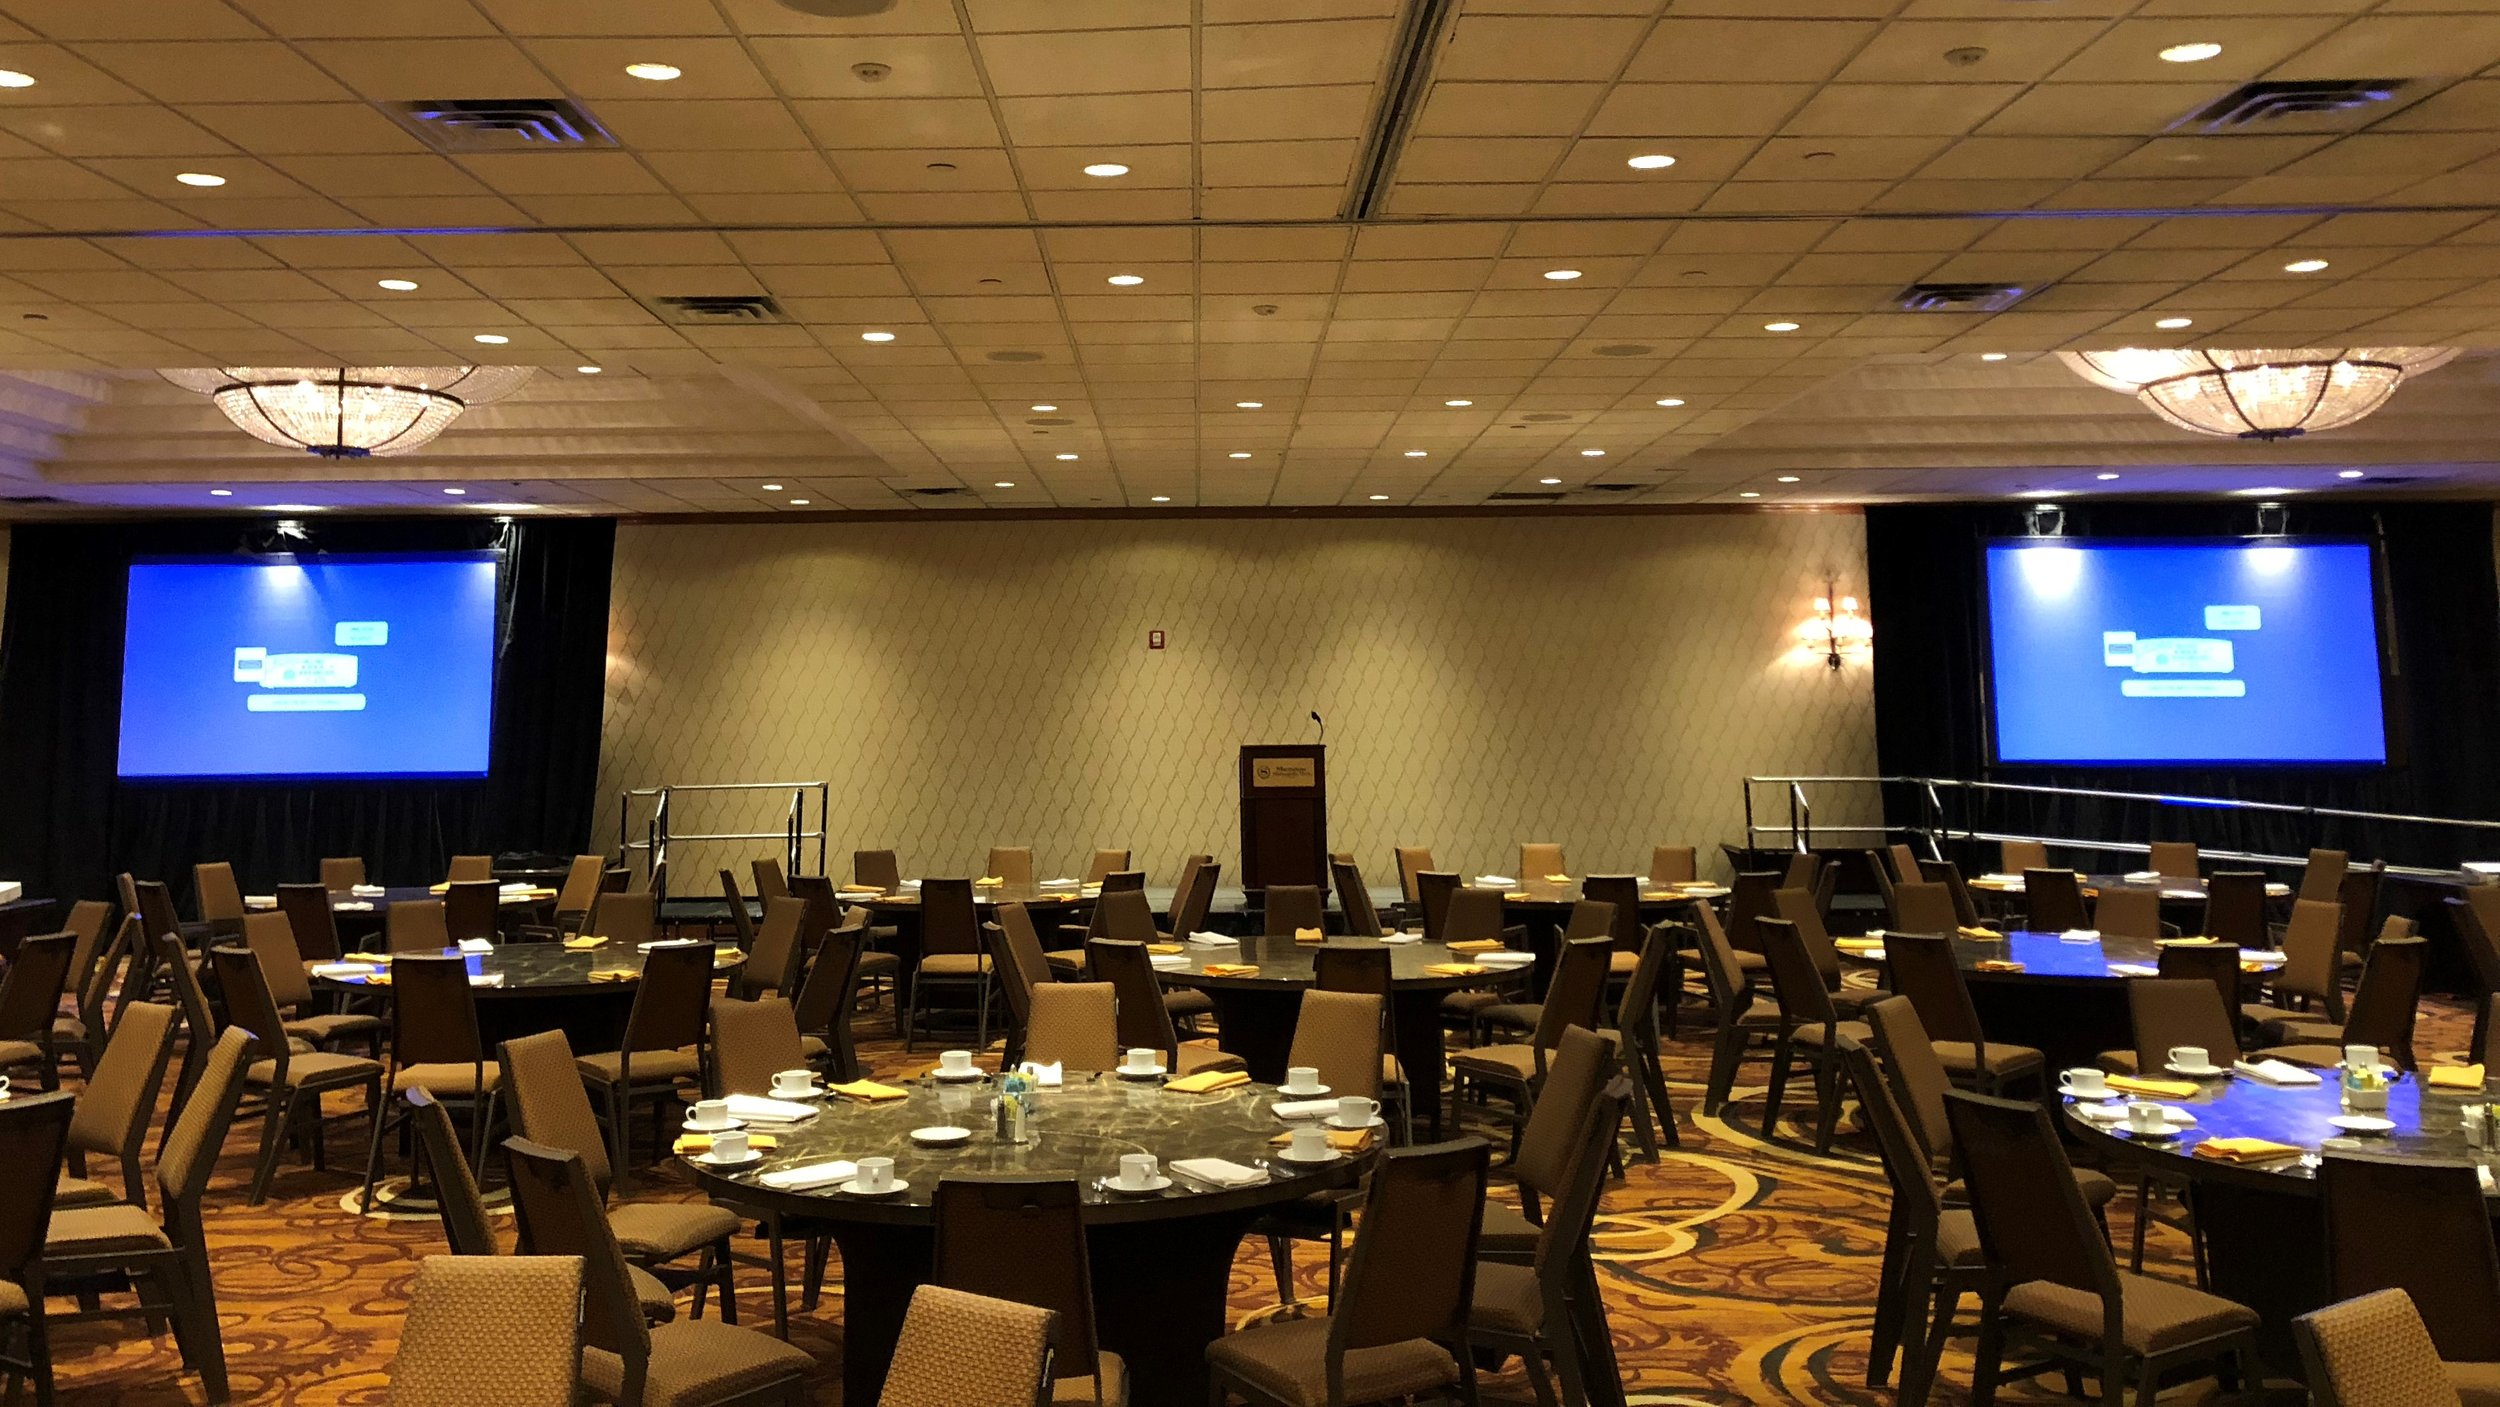 Picture of AV for You Audio Visual Rental Equipment at the Sheraton Minneapolis West Hotel